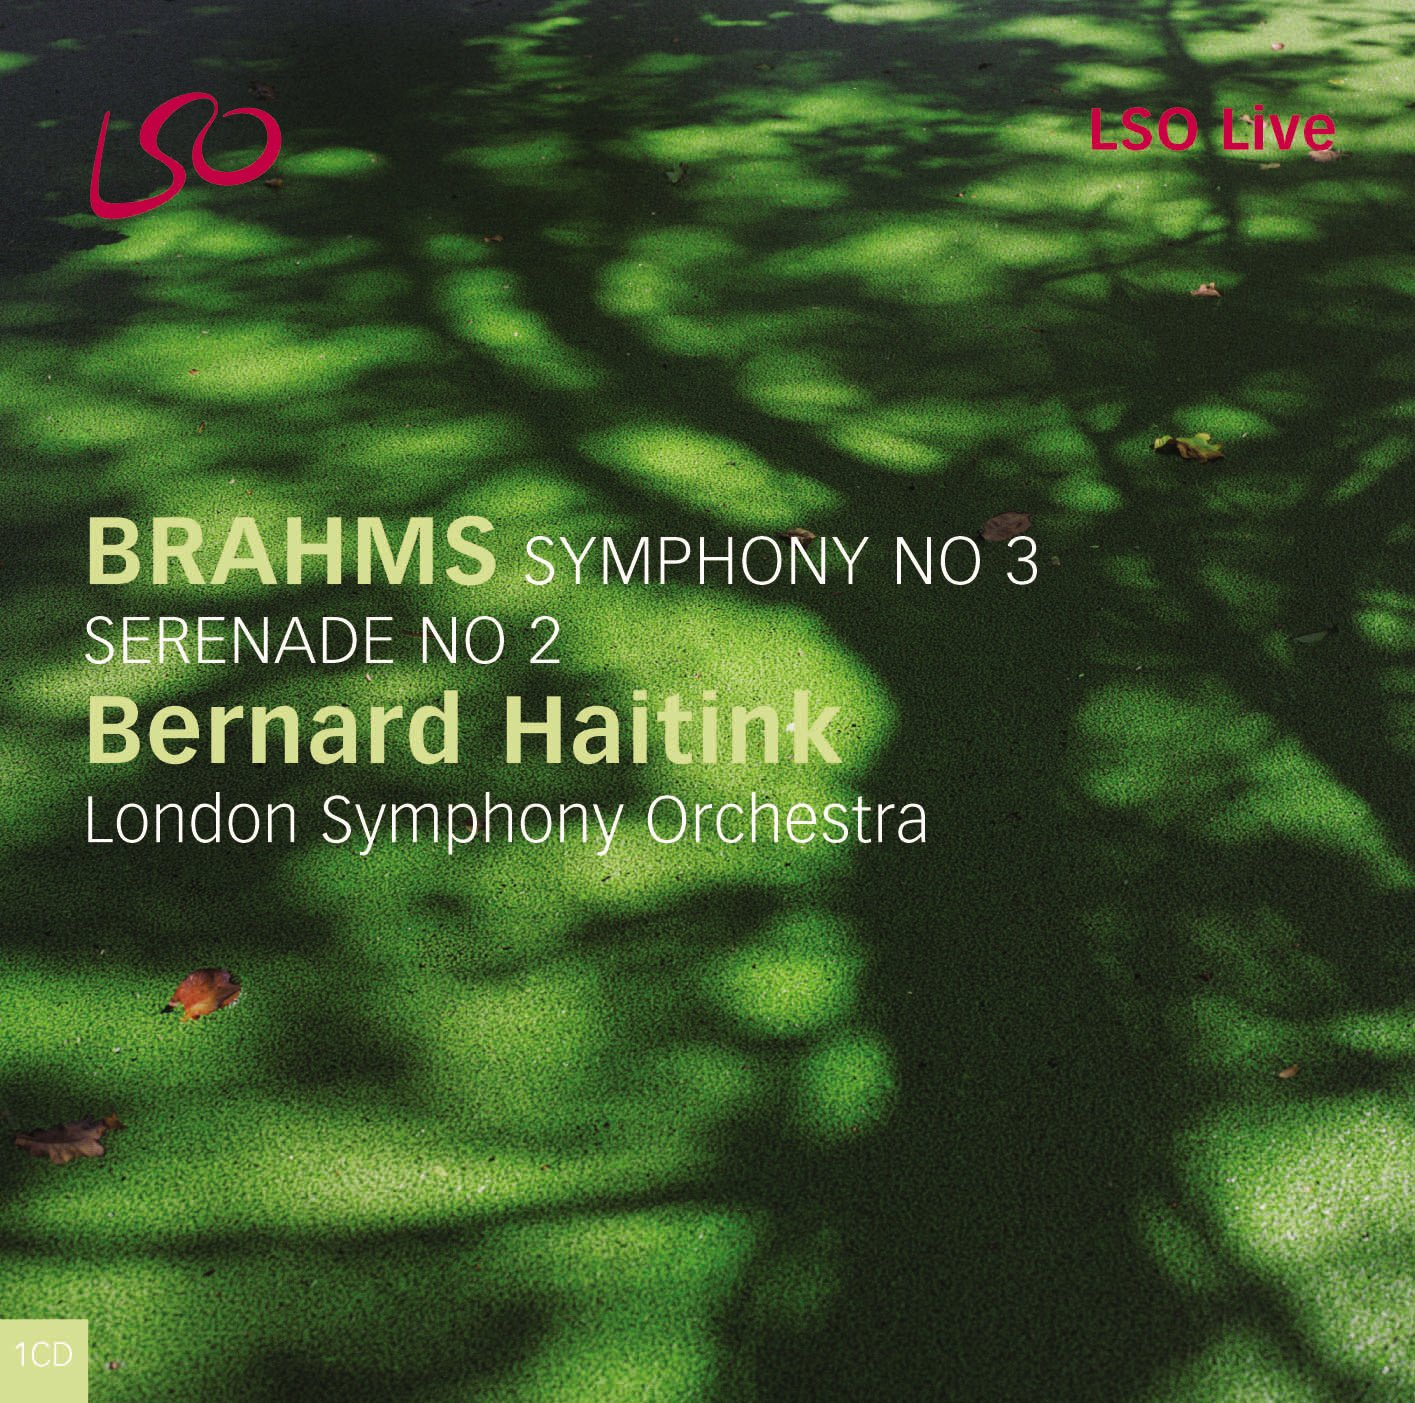 Brahms: Symphony No.3, Serenade No.2 by LSO LIVE